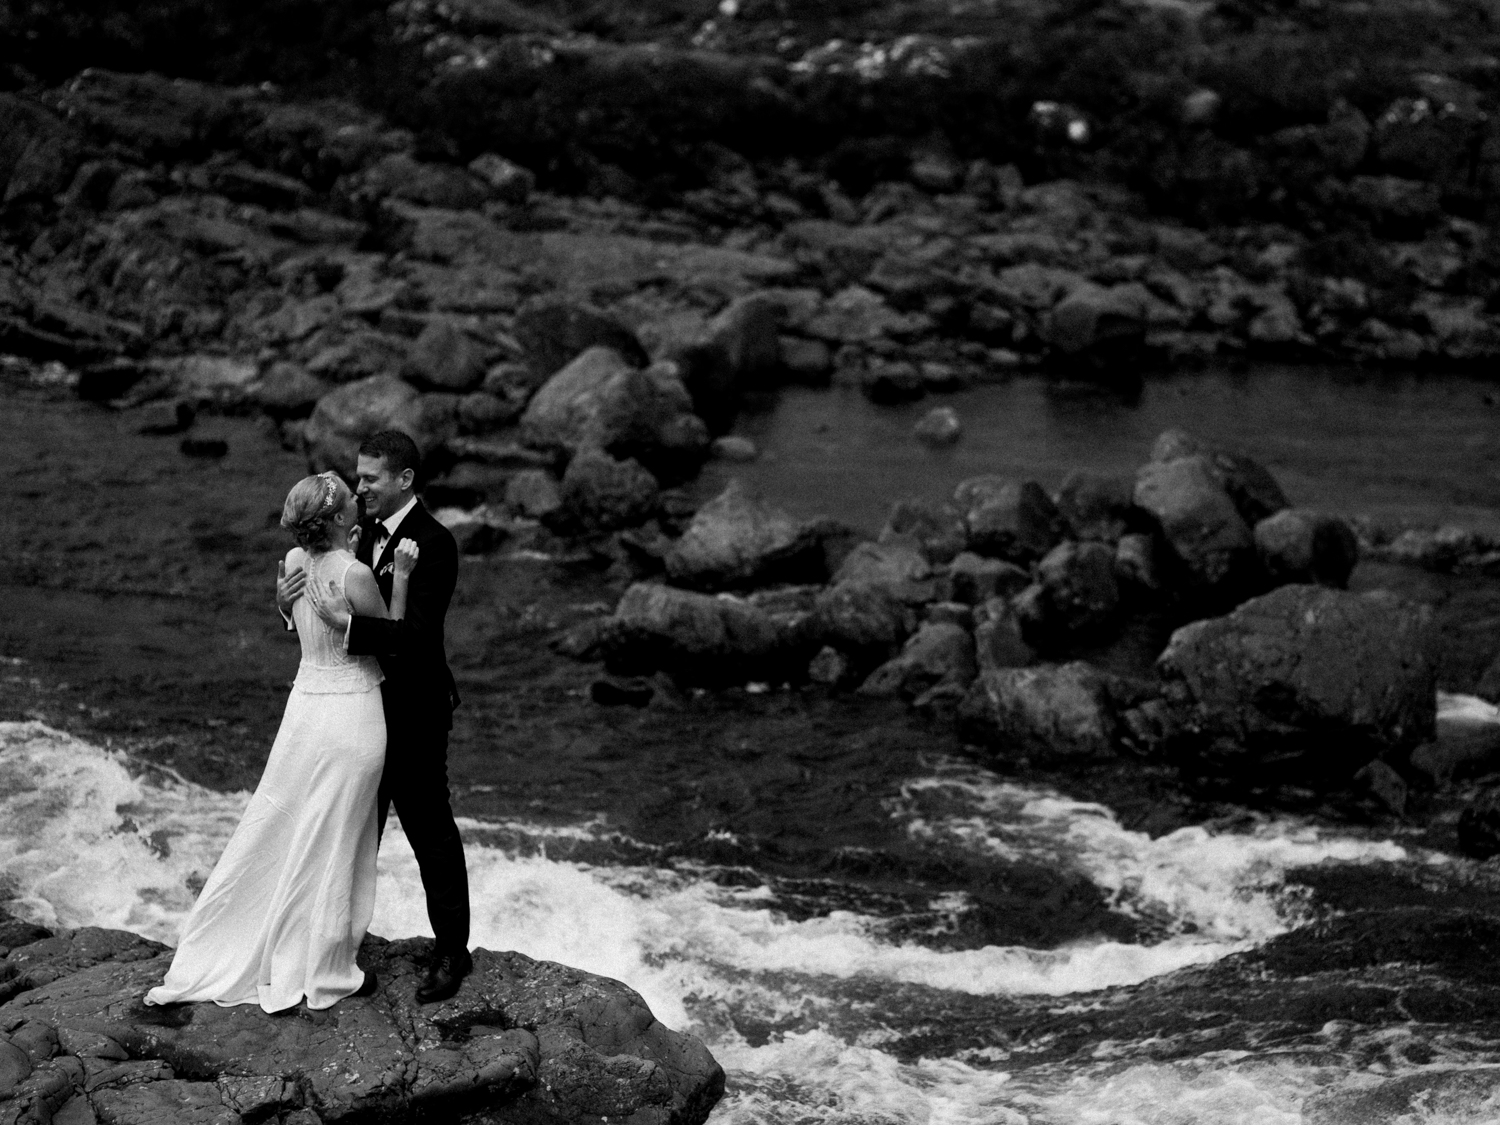 capyture-wedding-photographer-destination-elopement-isle-skye-scotland-384